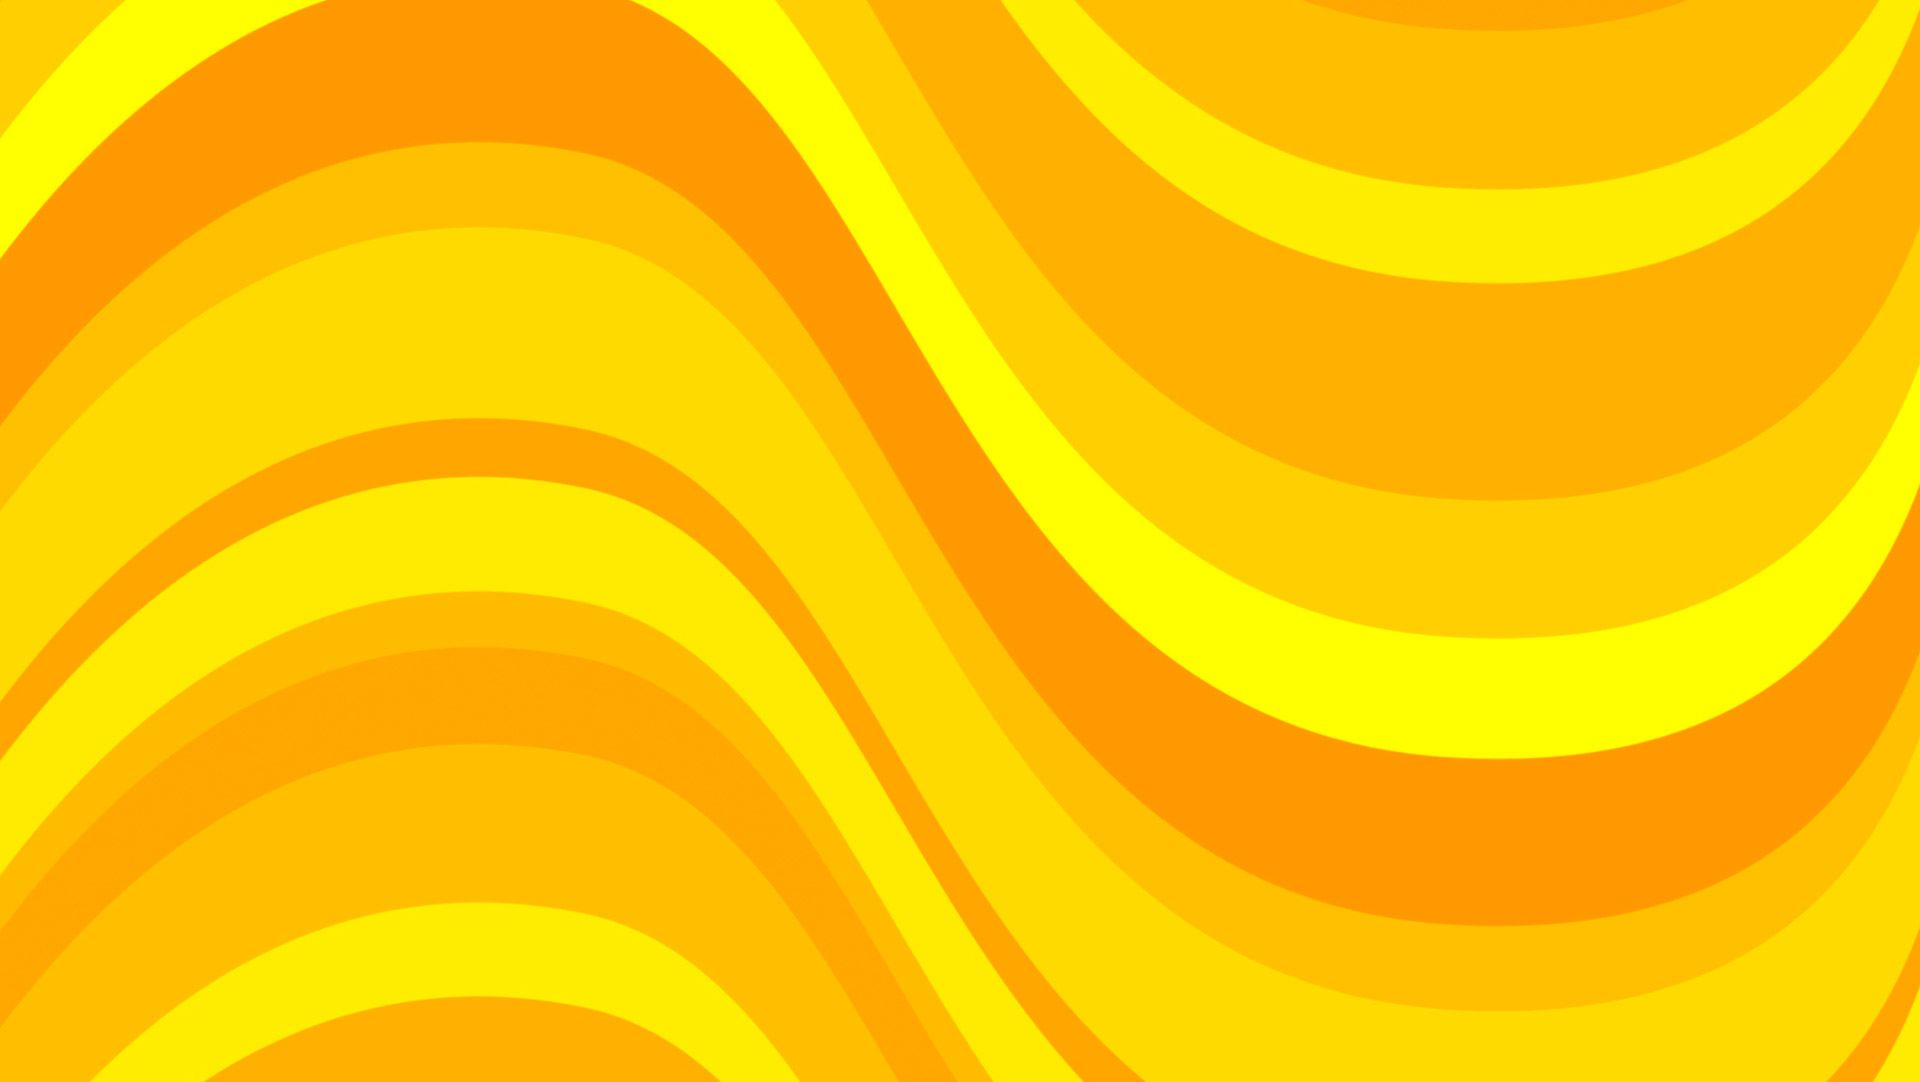 Orange Orange Yellow Background Free Stock Photo Hd Public Domain